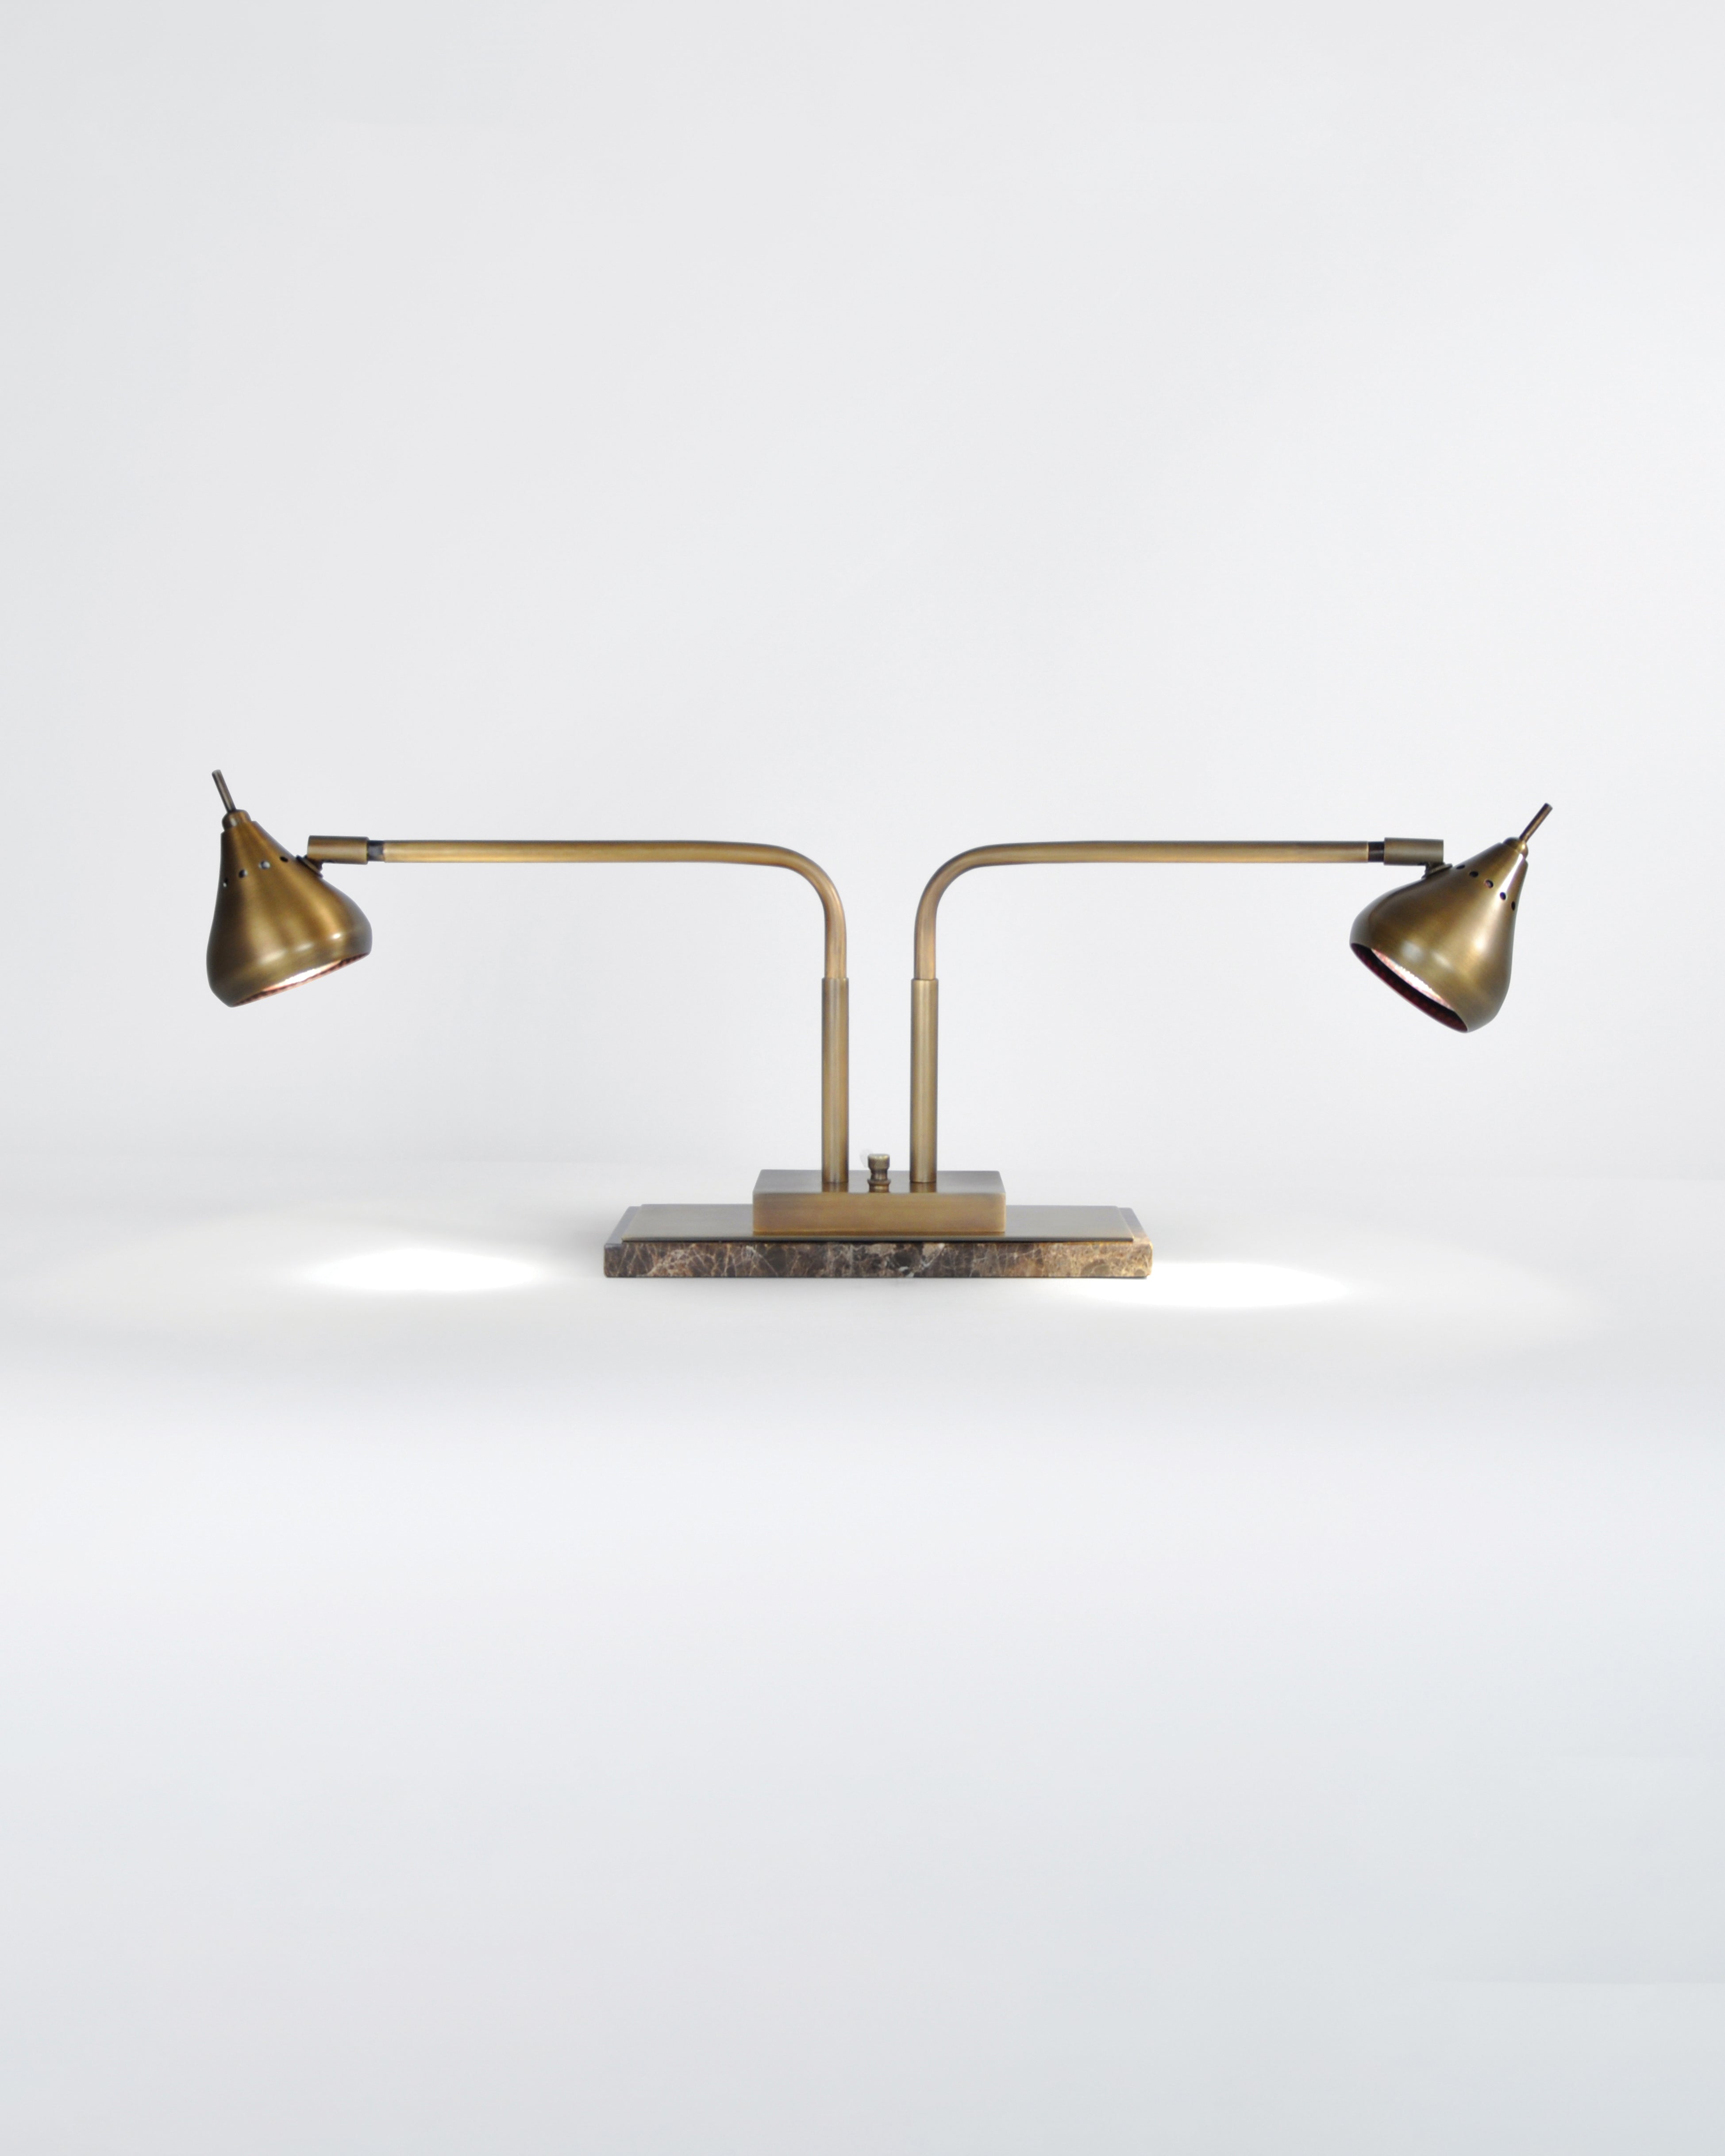 Light Antique Brass with Madera